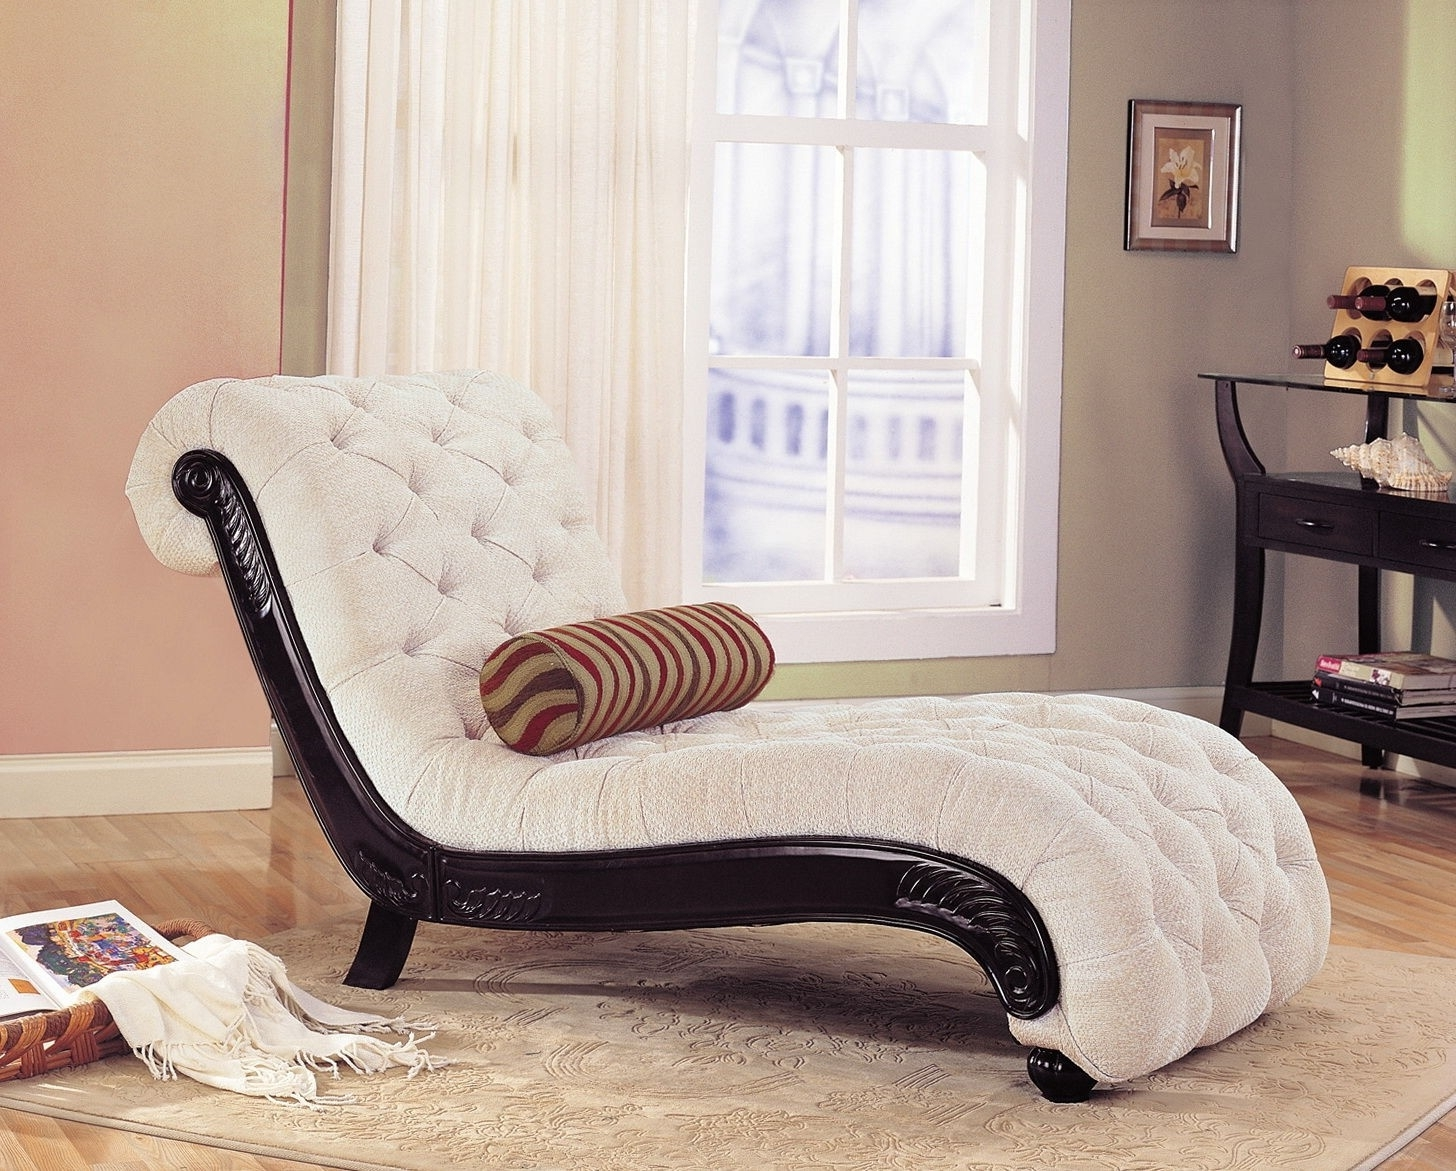 Upholstered Chaise Lounge Chairs for Preferred Chaise Lounge Chairs For Bedroom Chaise Lounge Chairs For Bedroom